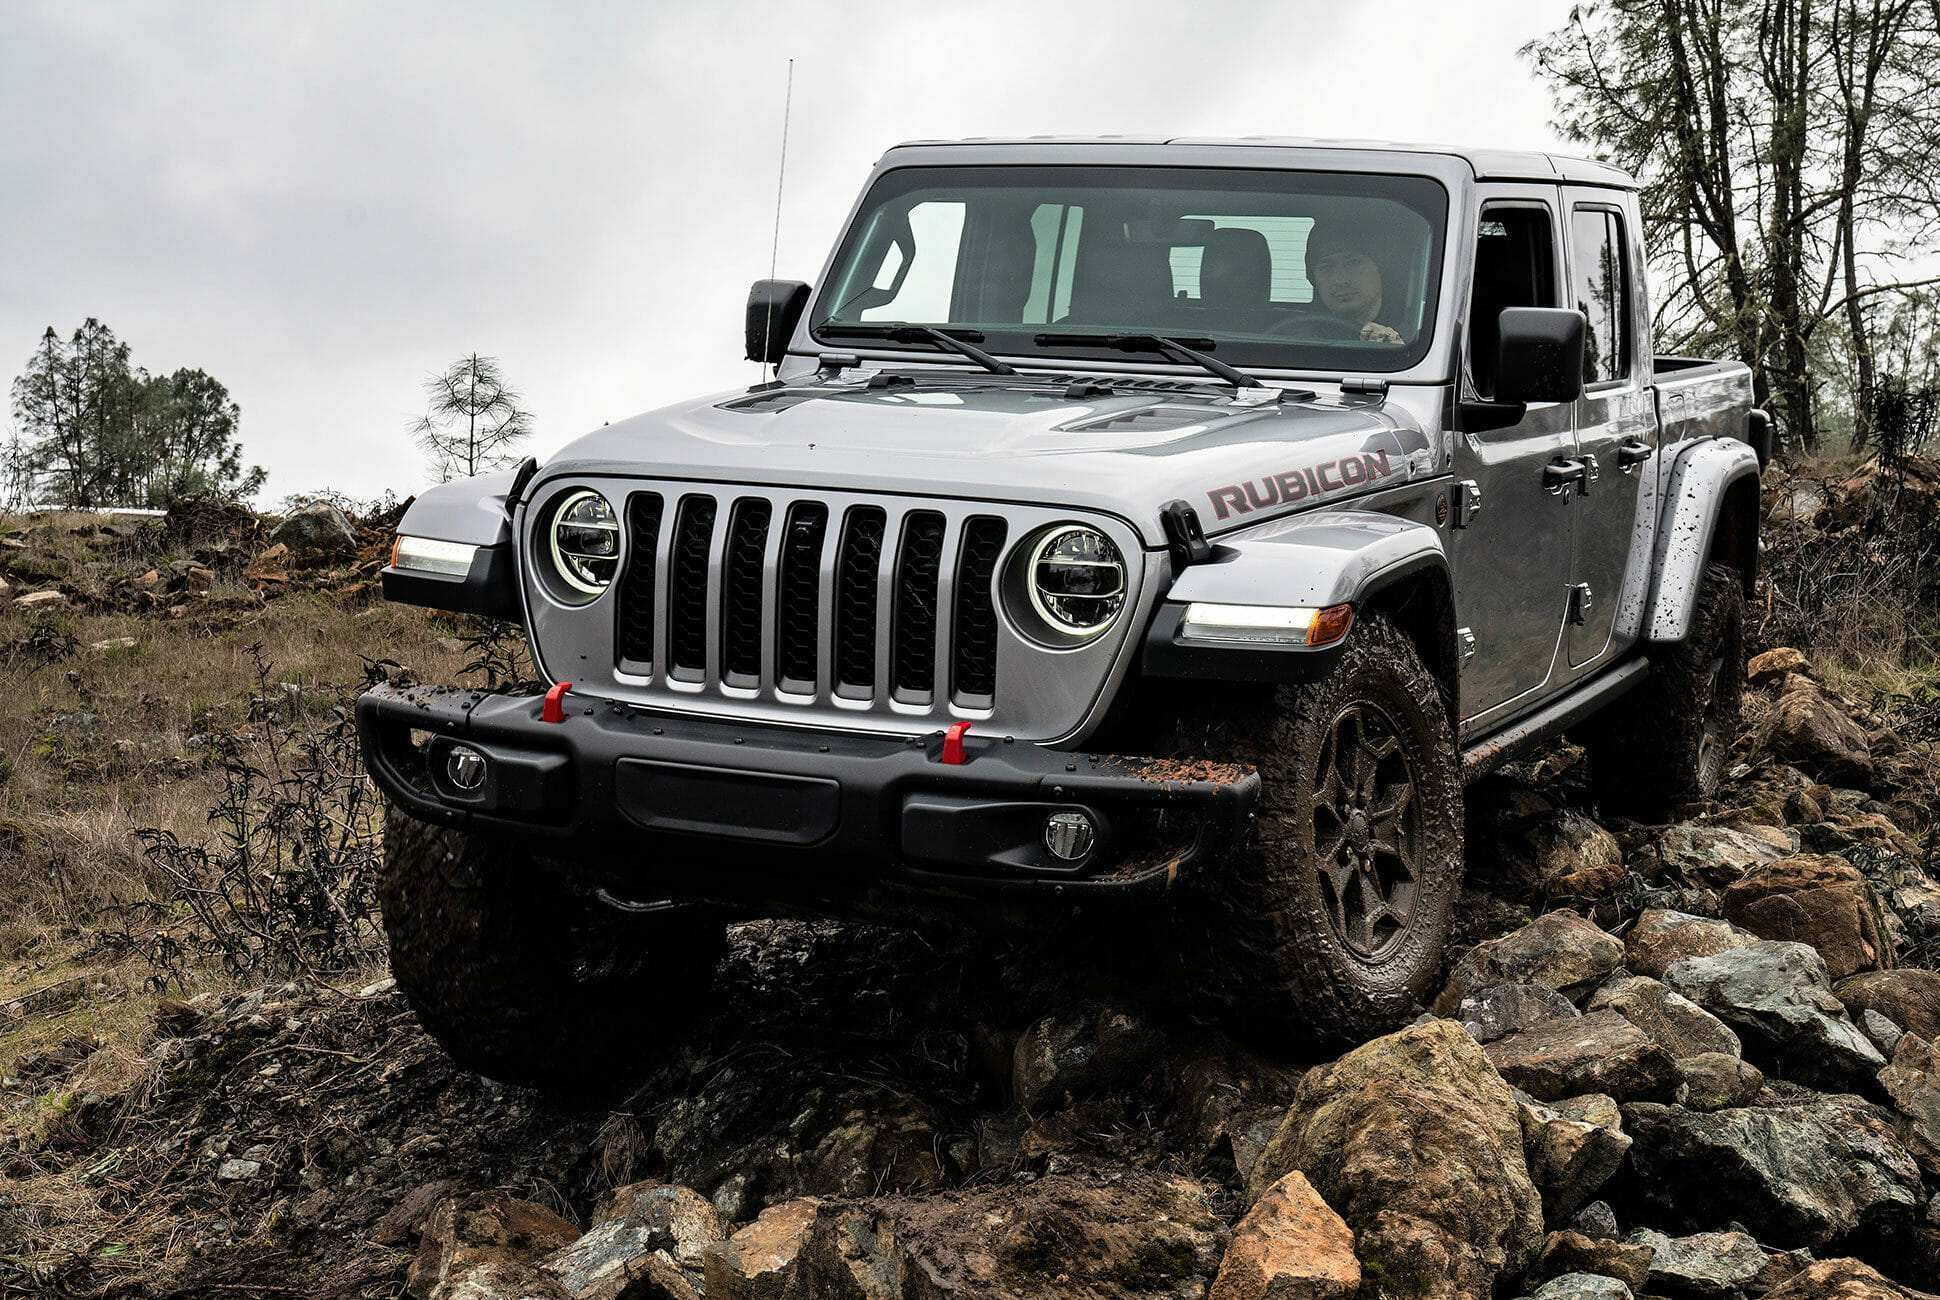 61 The Best Jeep The Mac 2020 Prices